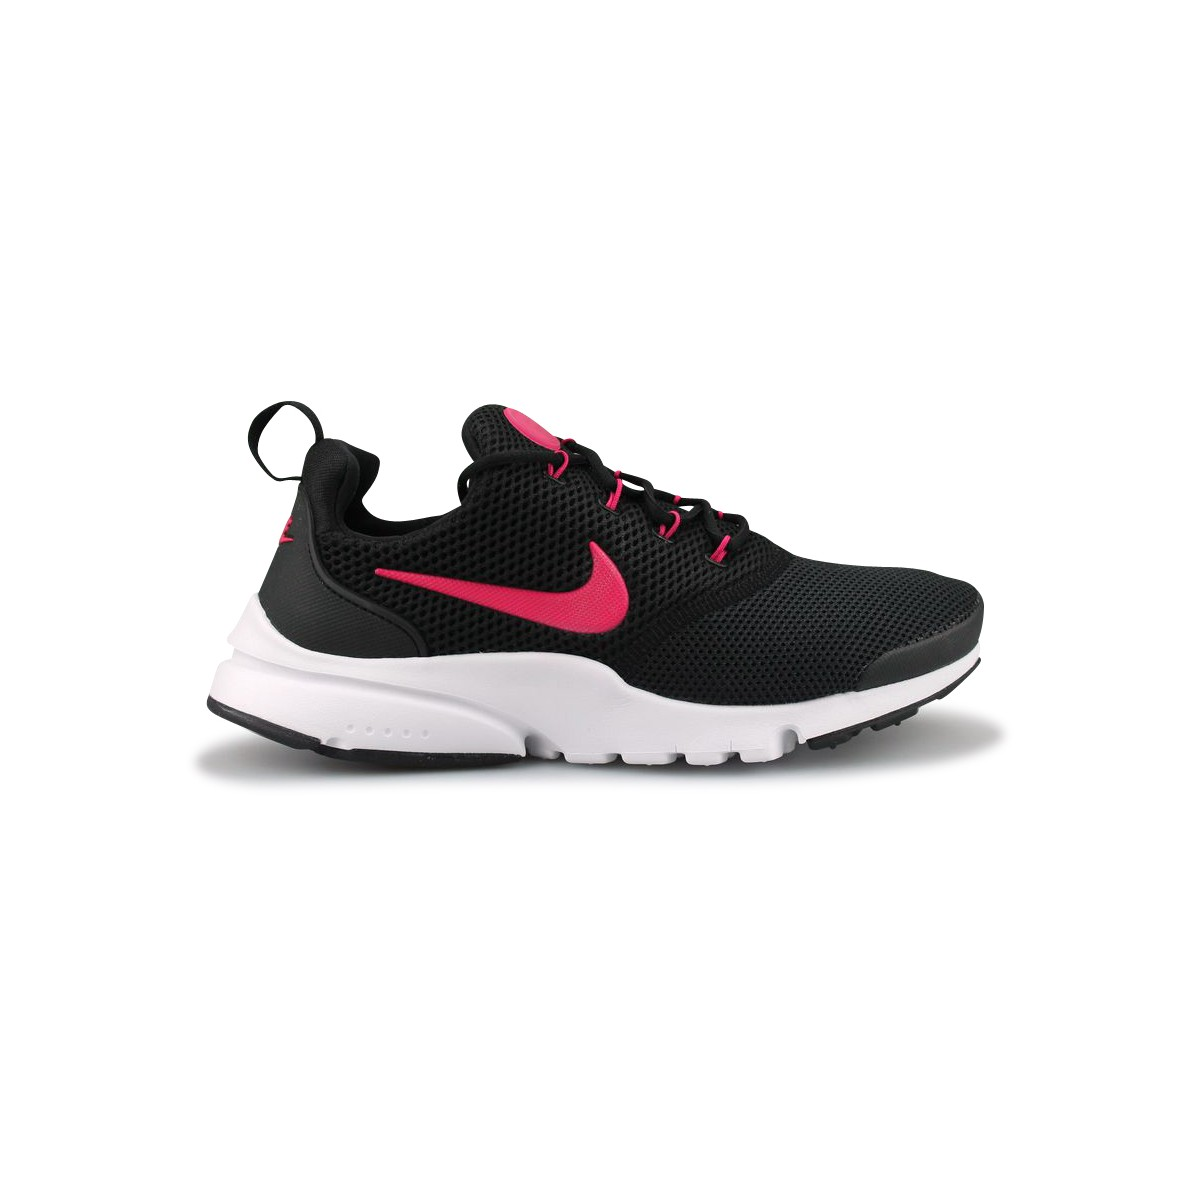 finest selection 46ee8 f087b NIKE PRESTO FLY JUNIOR NOIR ROSE - Street Shoes Addict